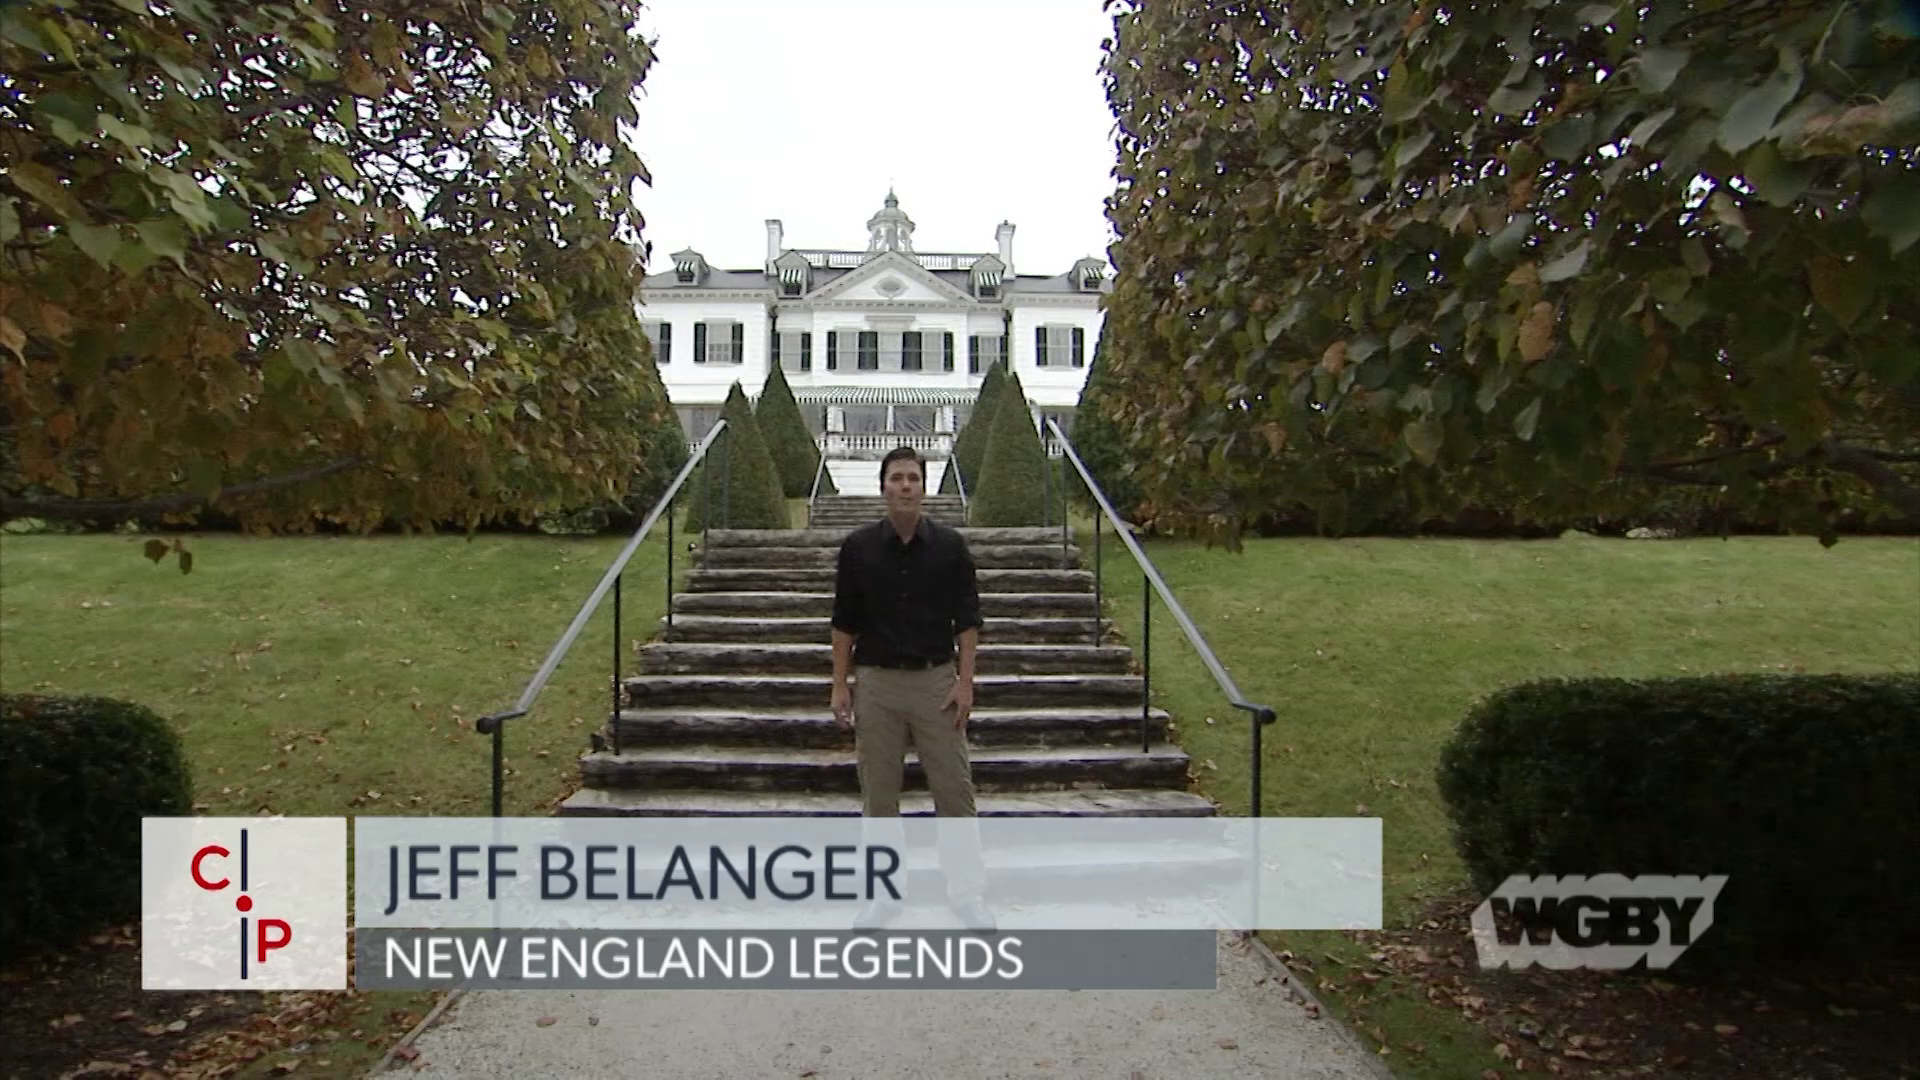 Legend Hunter Jeff Belanger travels to Lenox, MA and uncovers the deepest, darkest secrets of The Mount, home of author Edith Wharton.